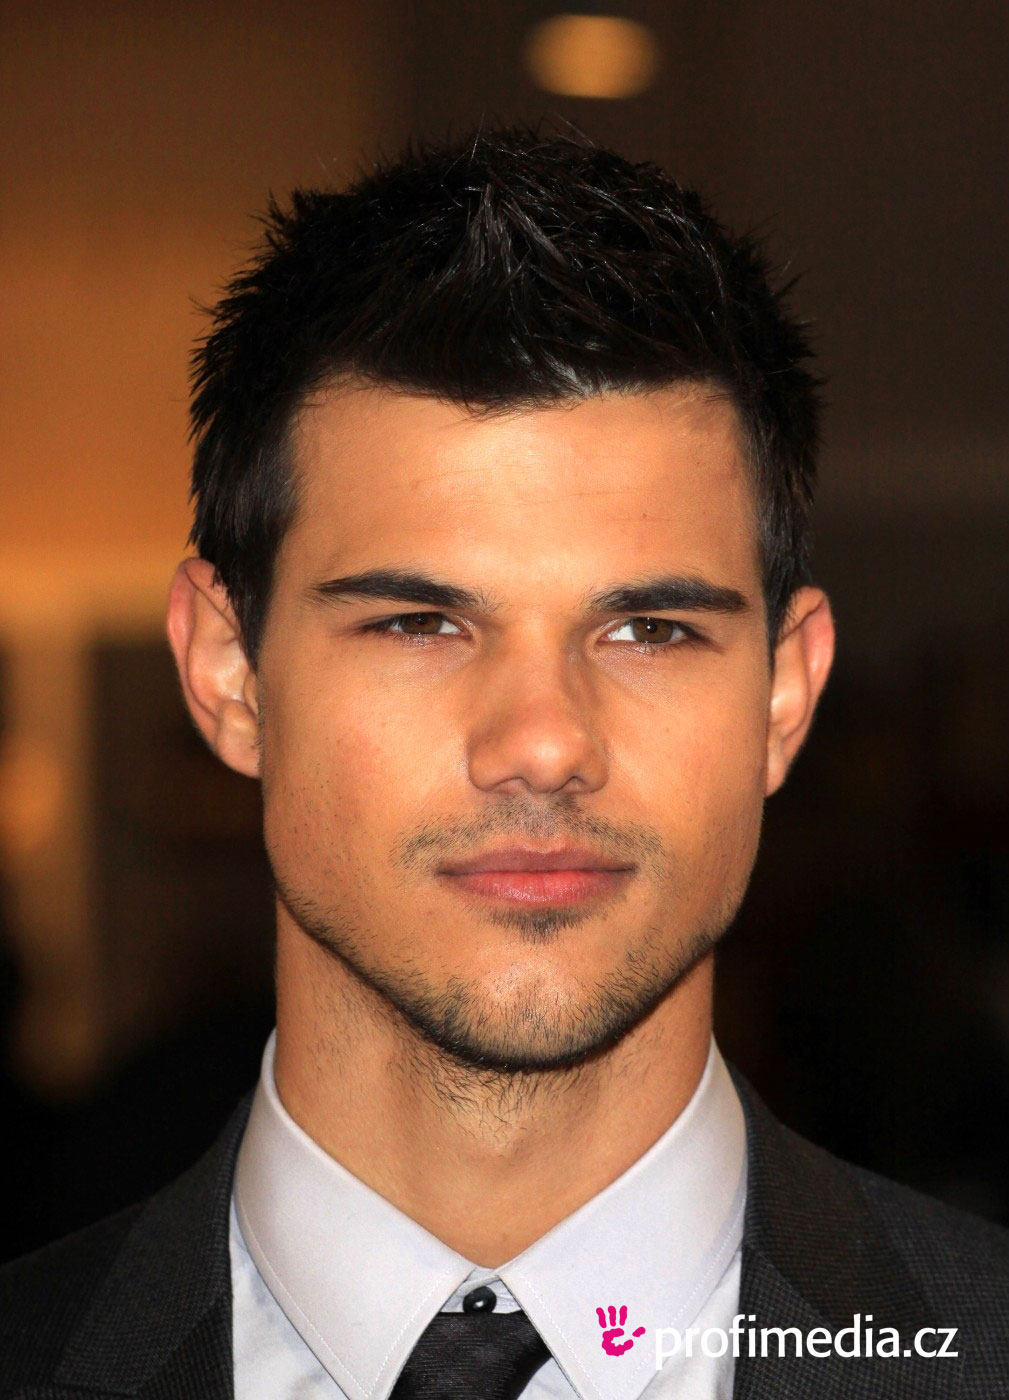 Taylor lautner hairstyle easyhairstyler you can try this taylor lautners hairstyle with your own photo upload at easyhairstyler urmus Image collections